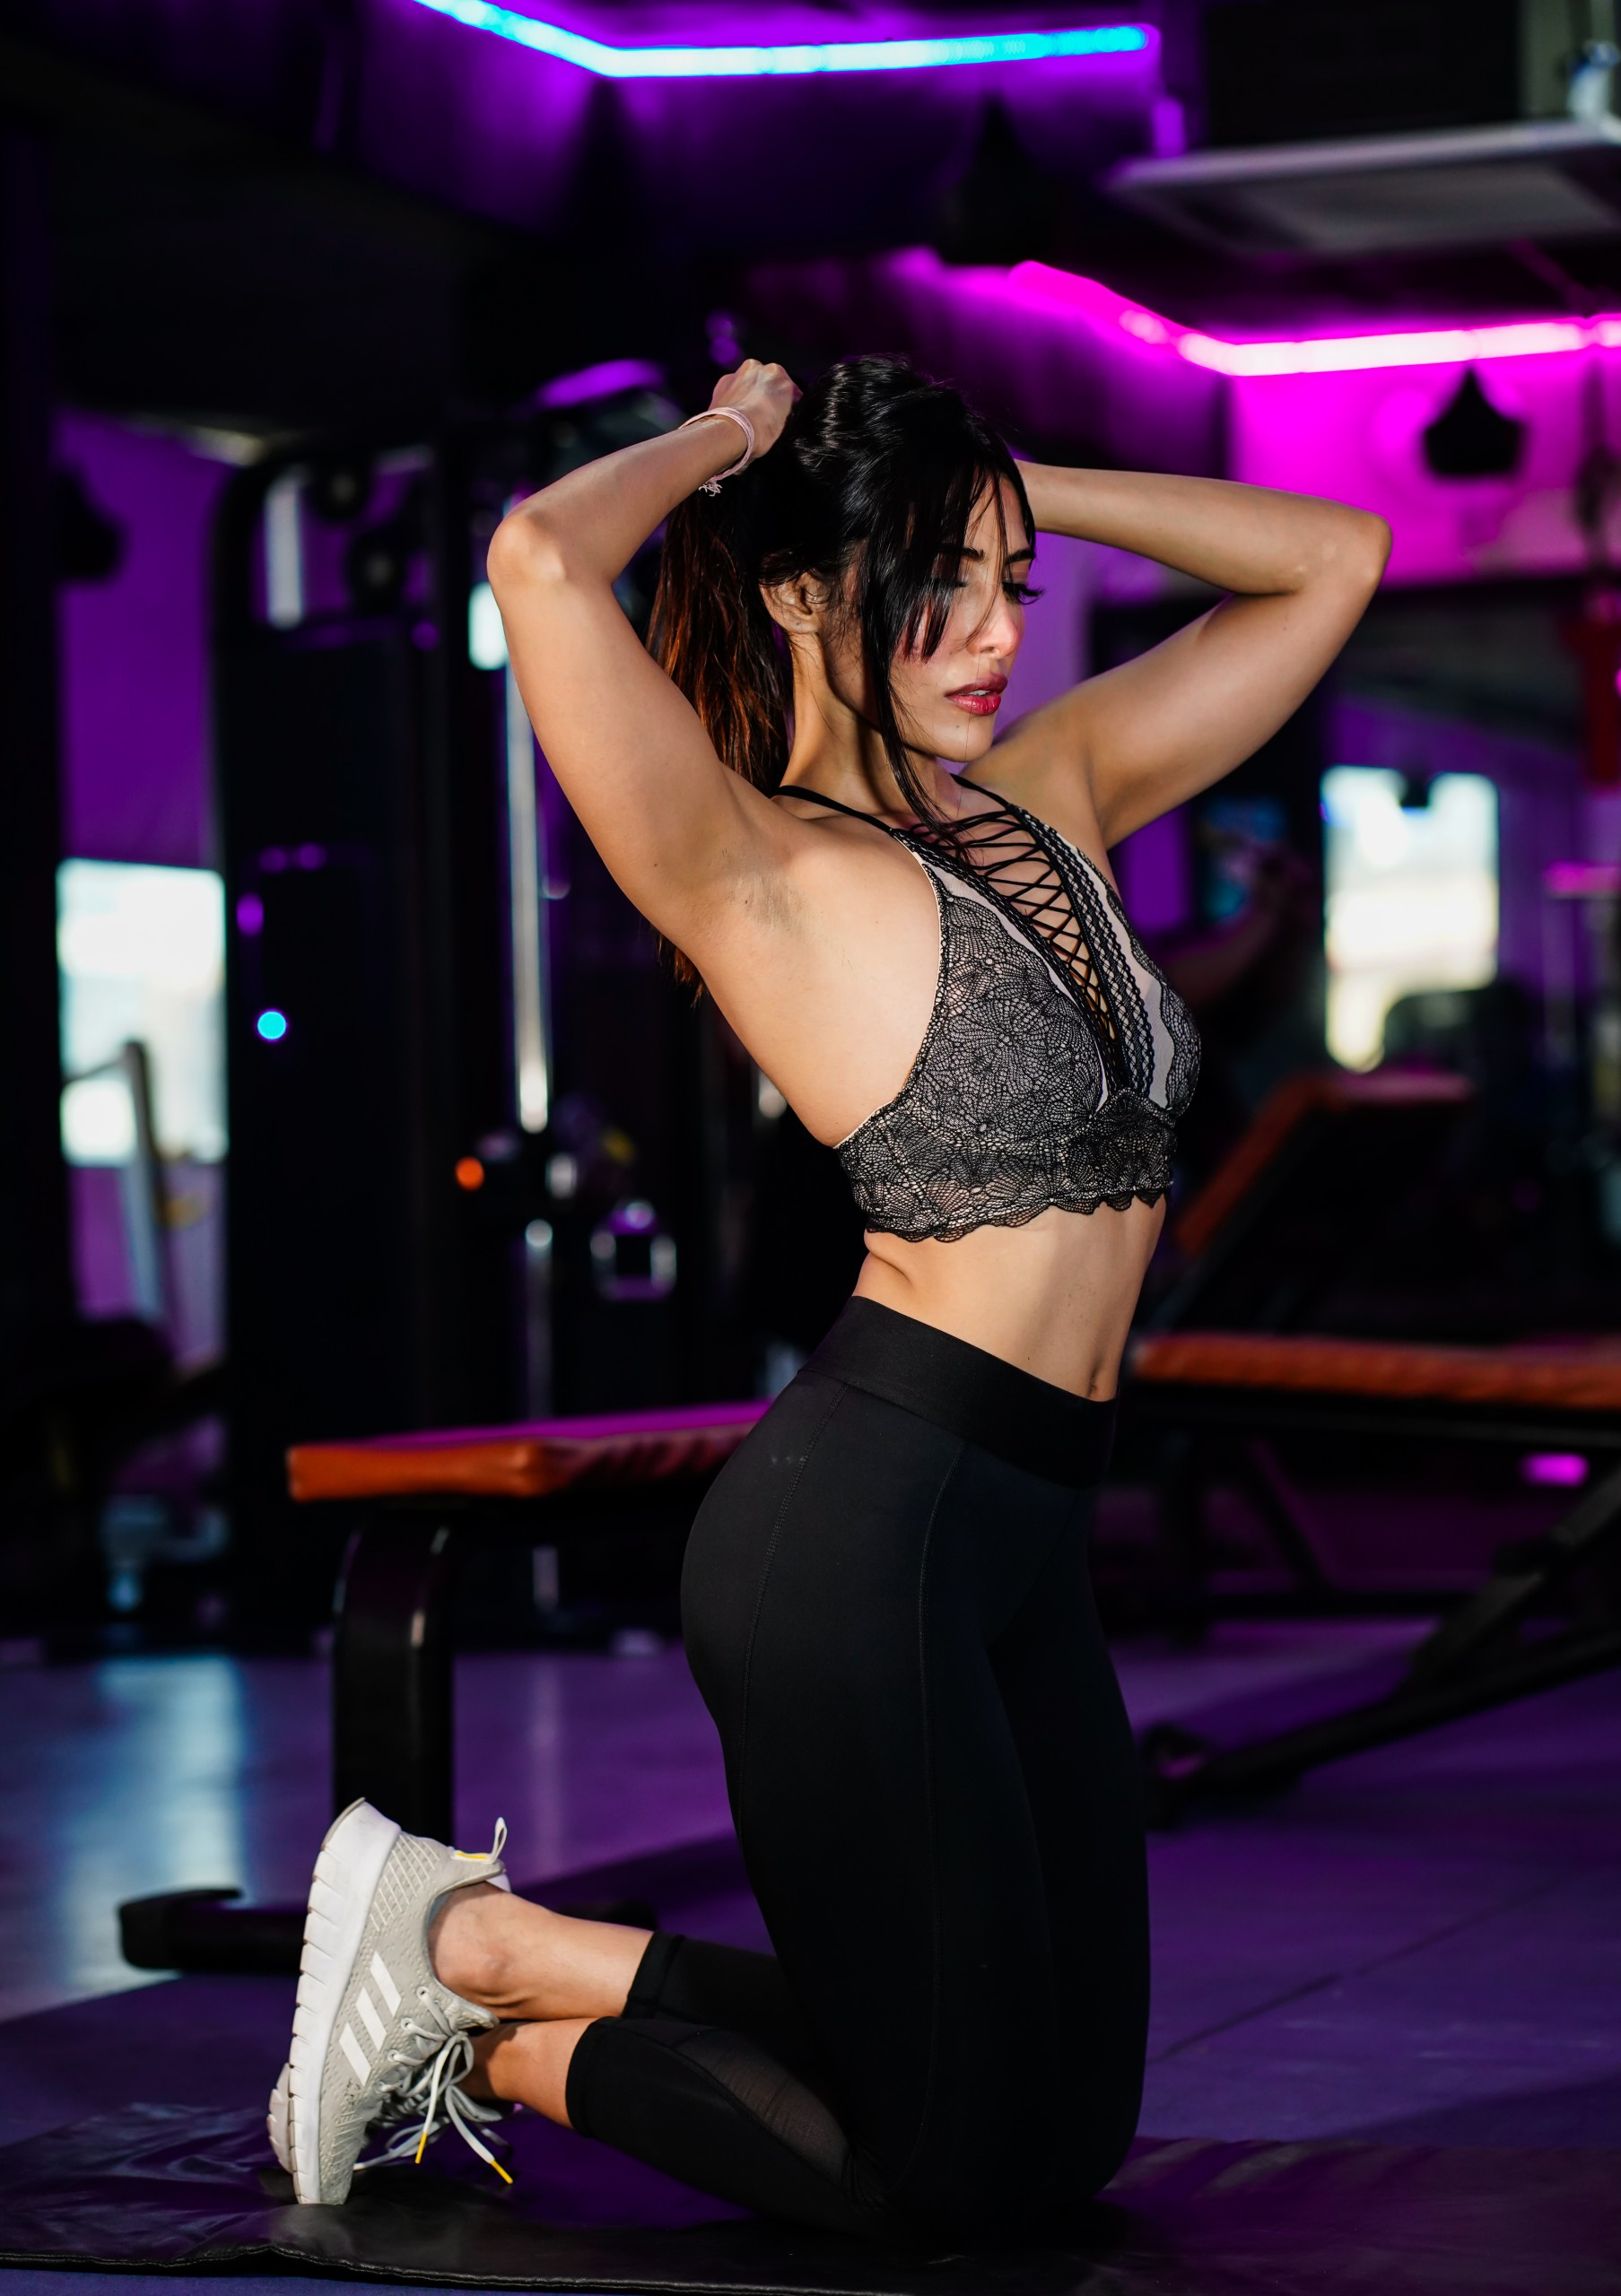 Fitness girl tie her hair in the gym